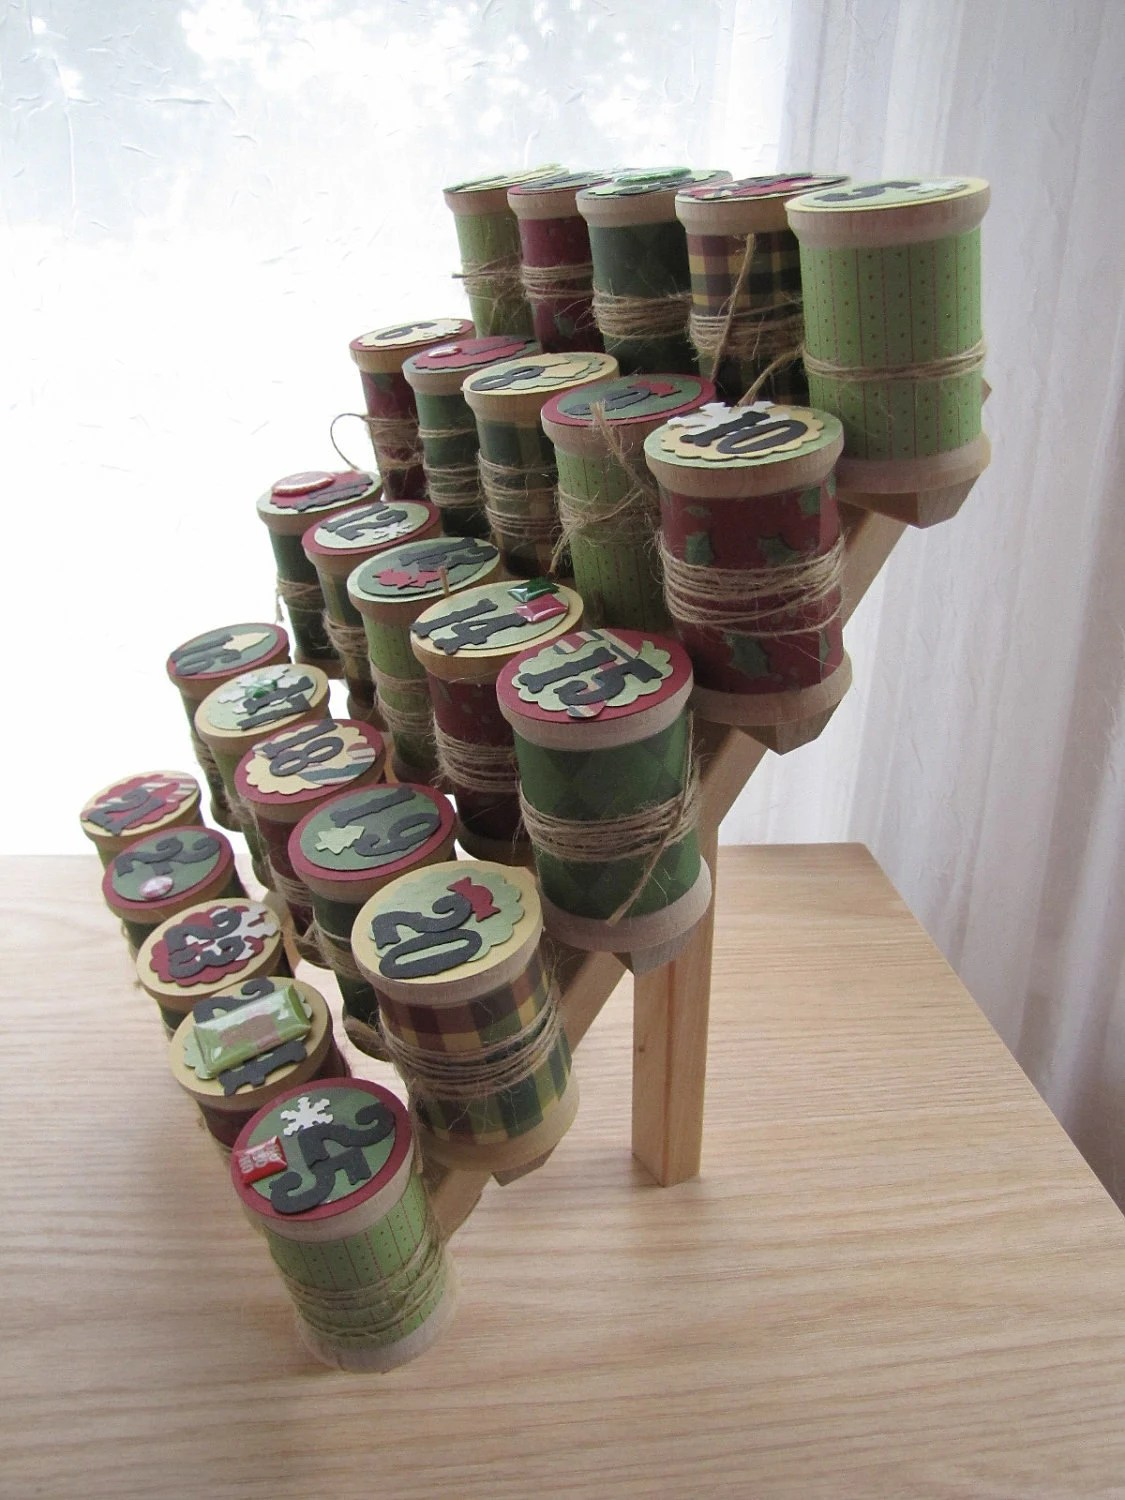 Advent Calendar - Wooden Spool Thread Holder  - Country Holiday Countdown